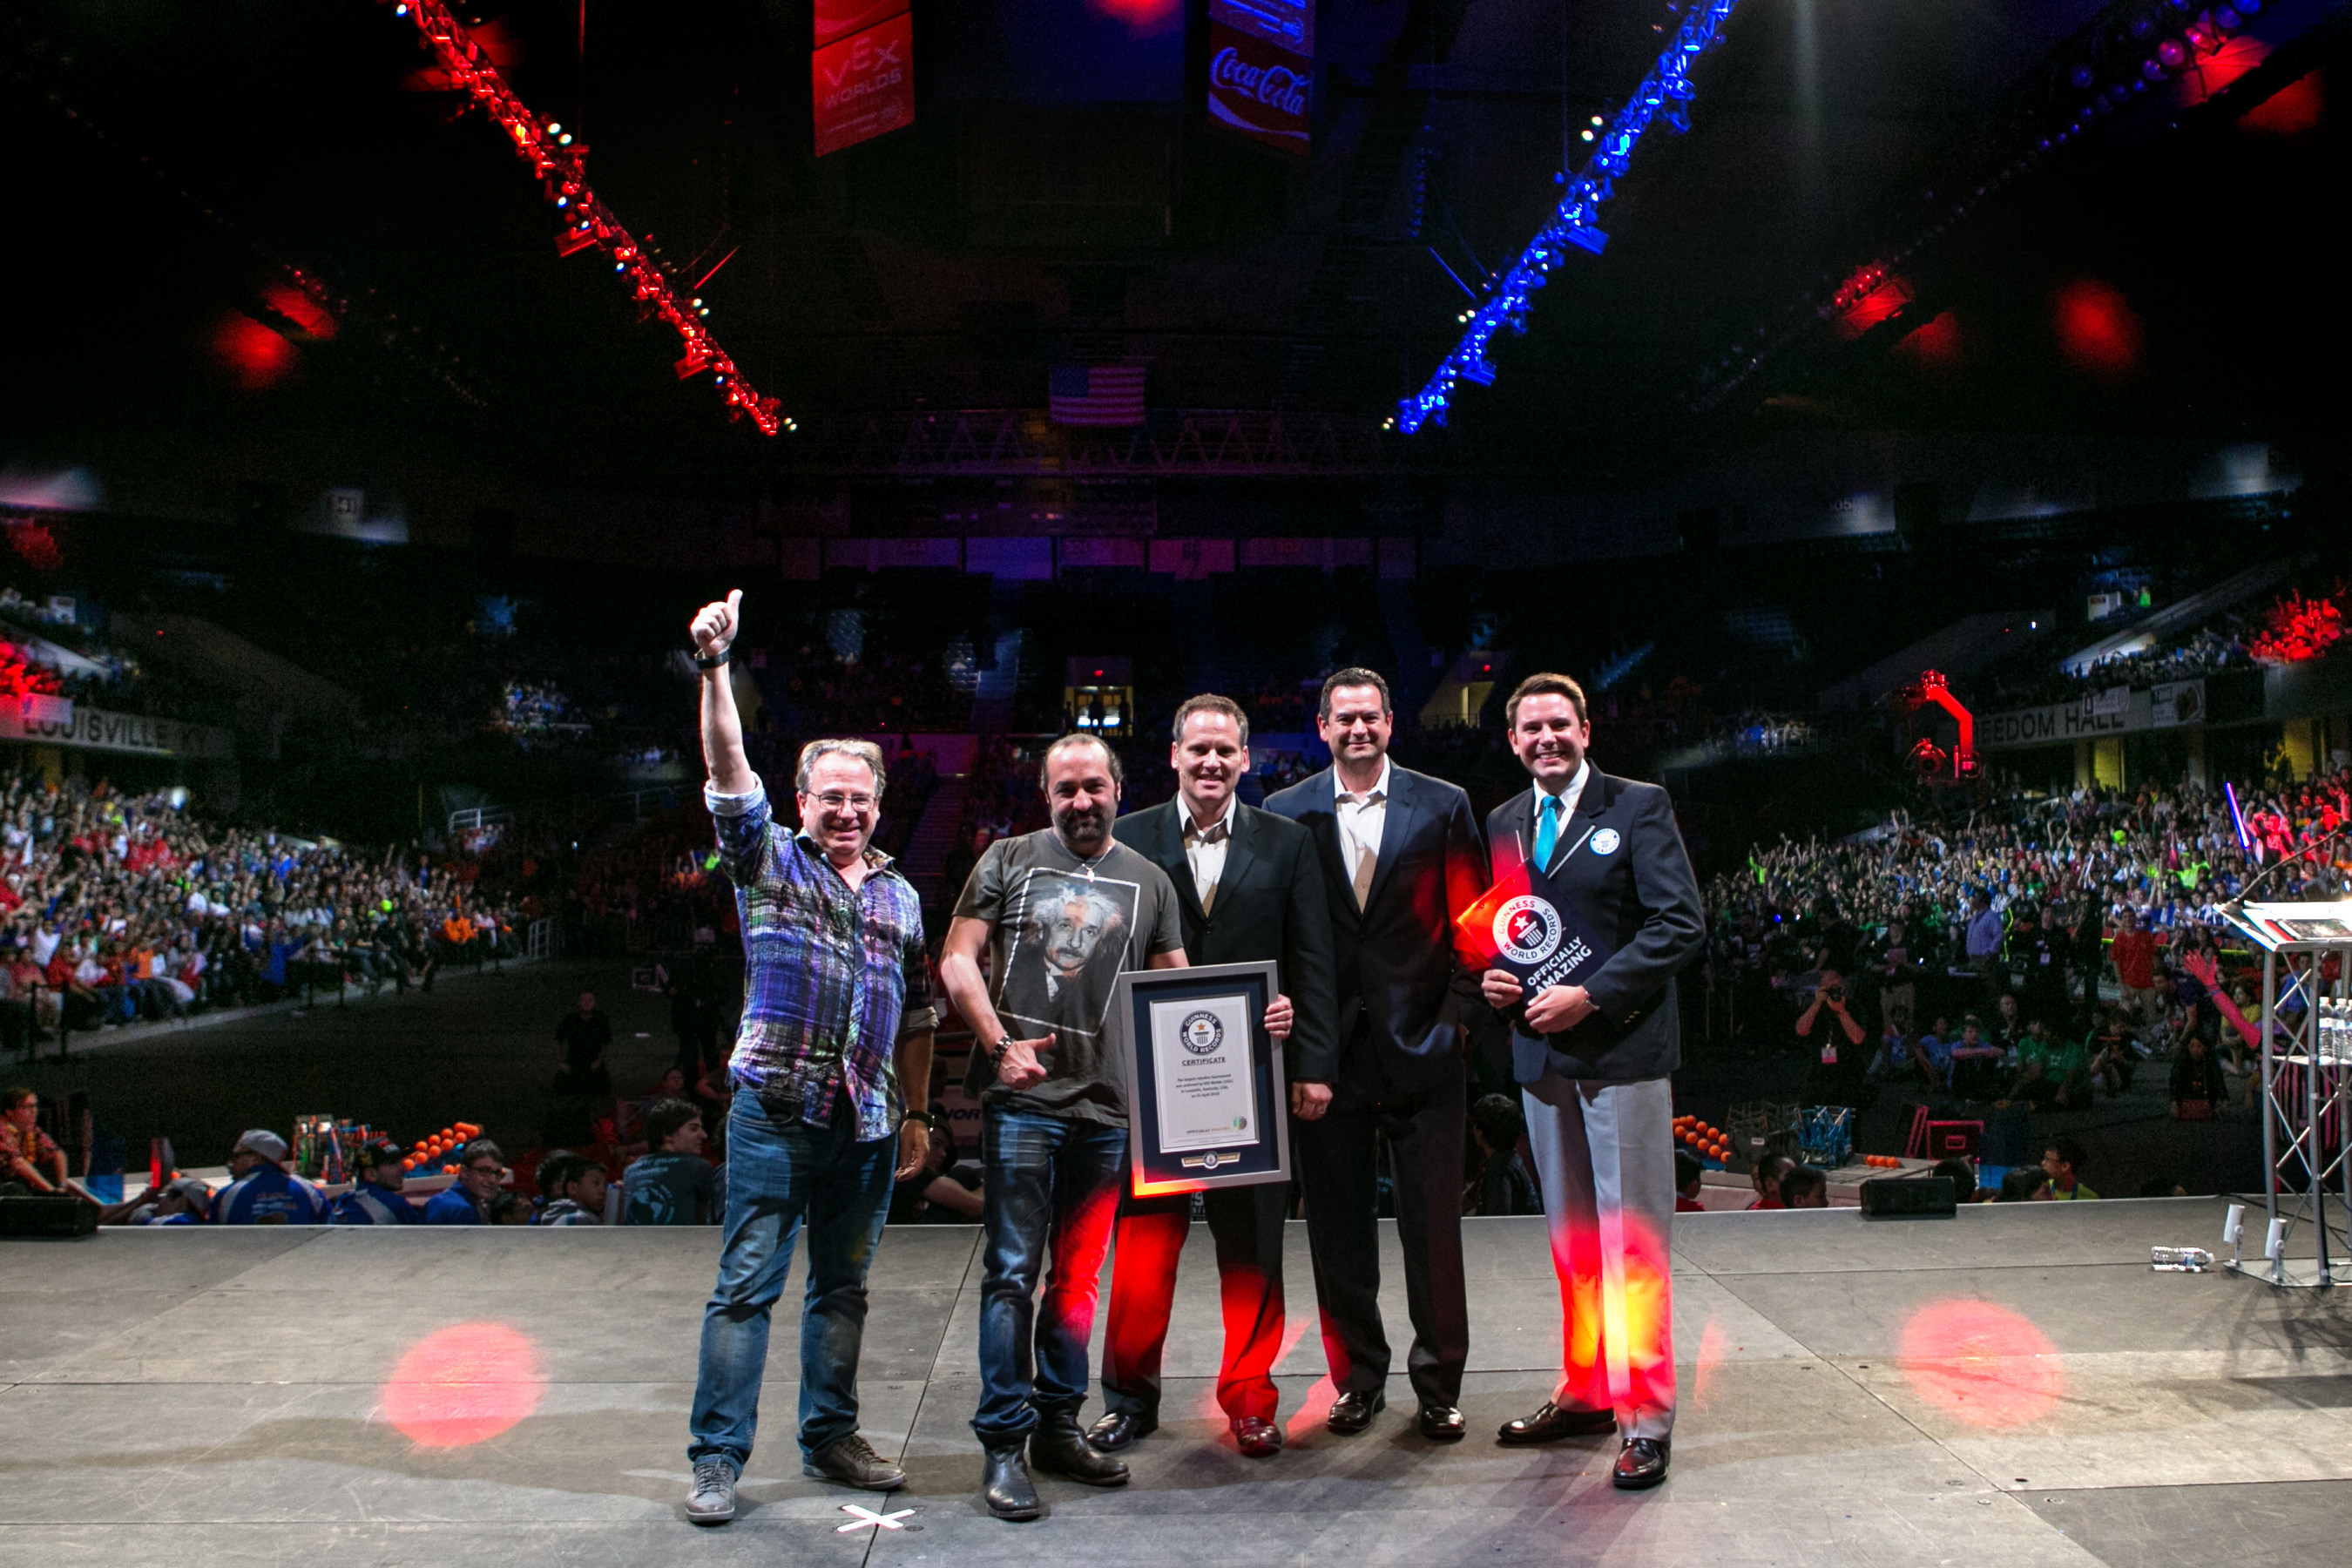 Robotics Students From Canada, China, Puerto Rico And The United States Of America Crowned Champions At VEX Worlds 2016